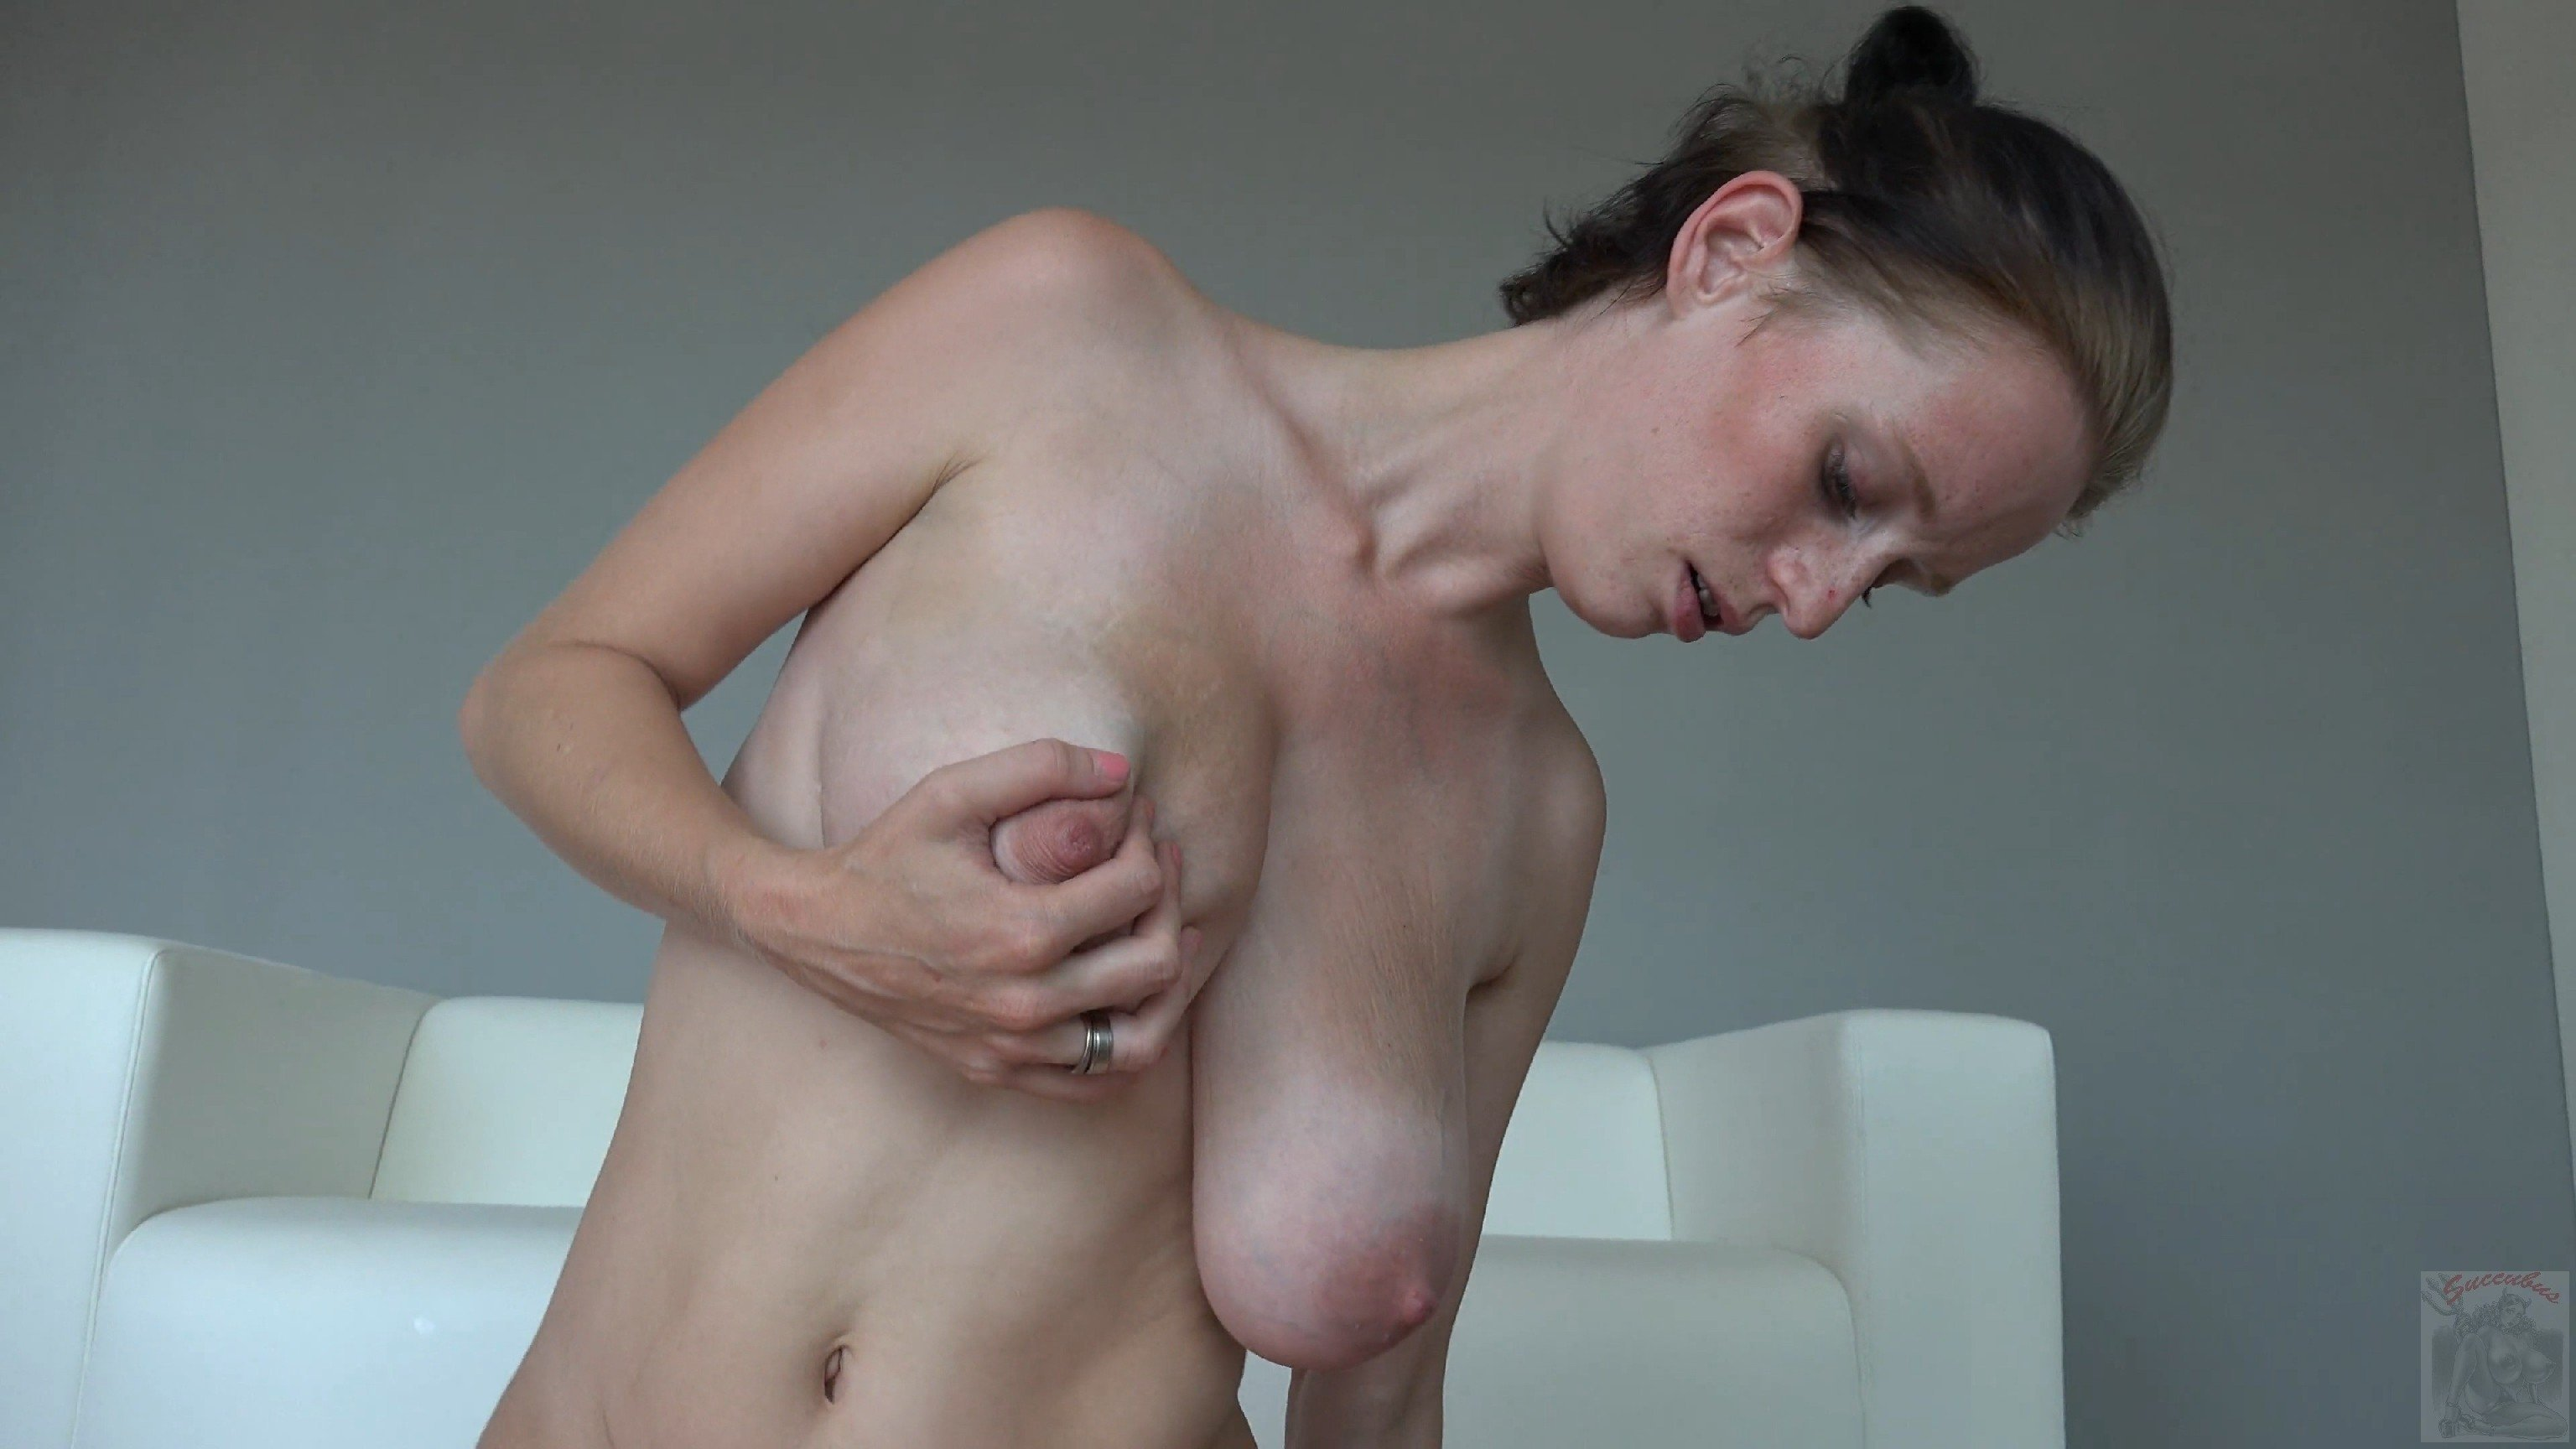 XXX saggy tits pics, free flaccid porn galery, sexy flabby porn galleries